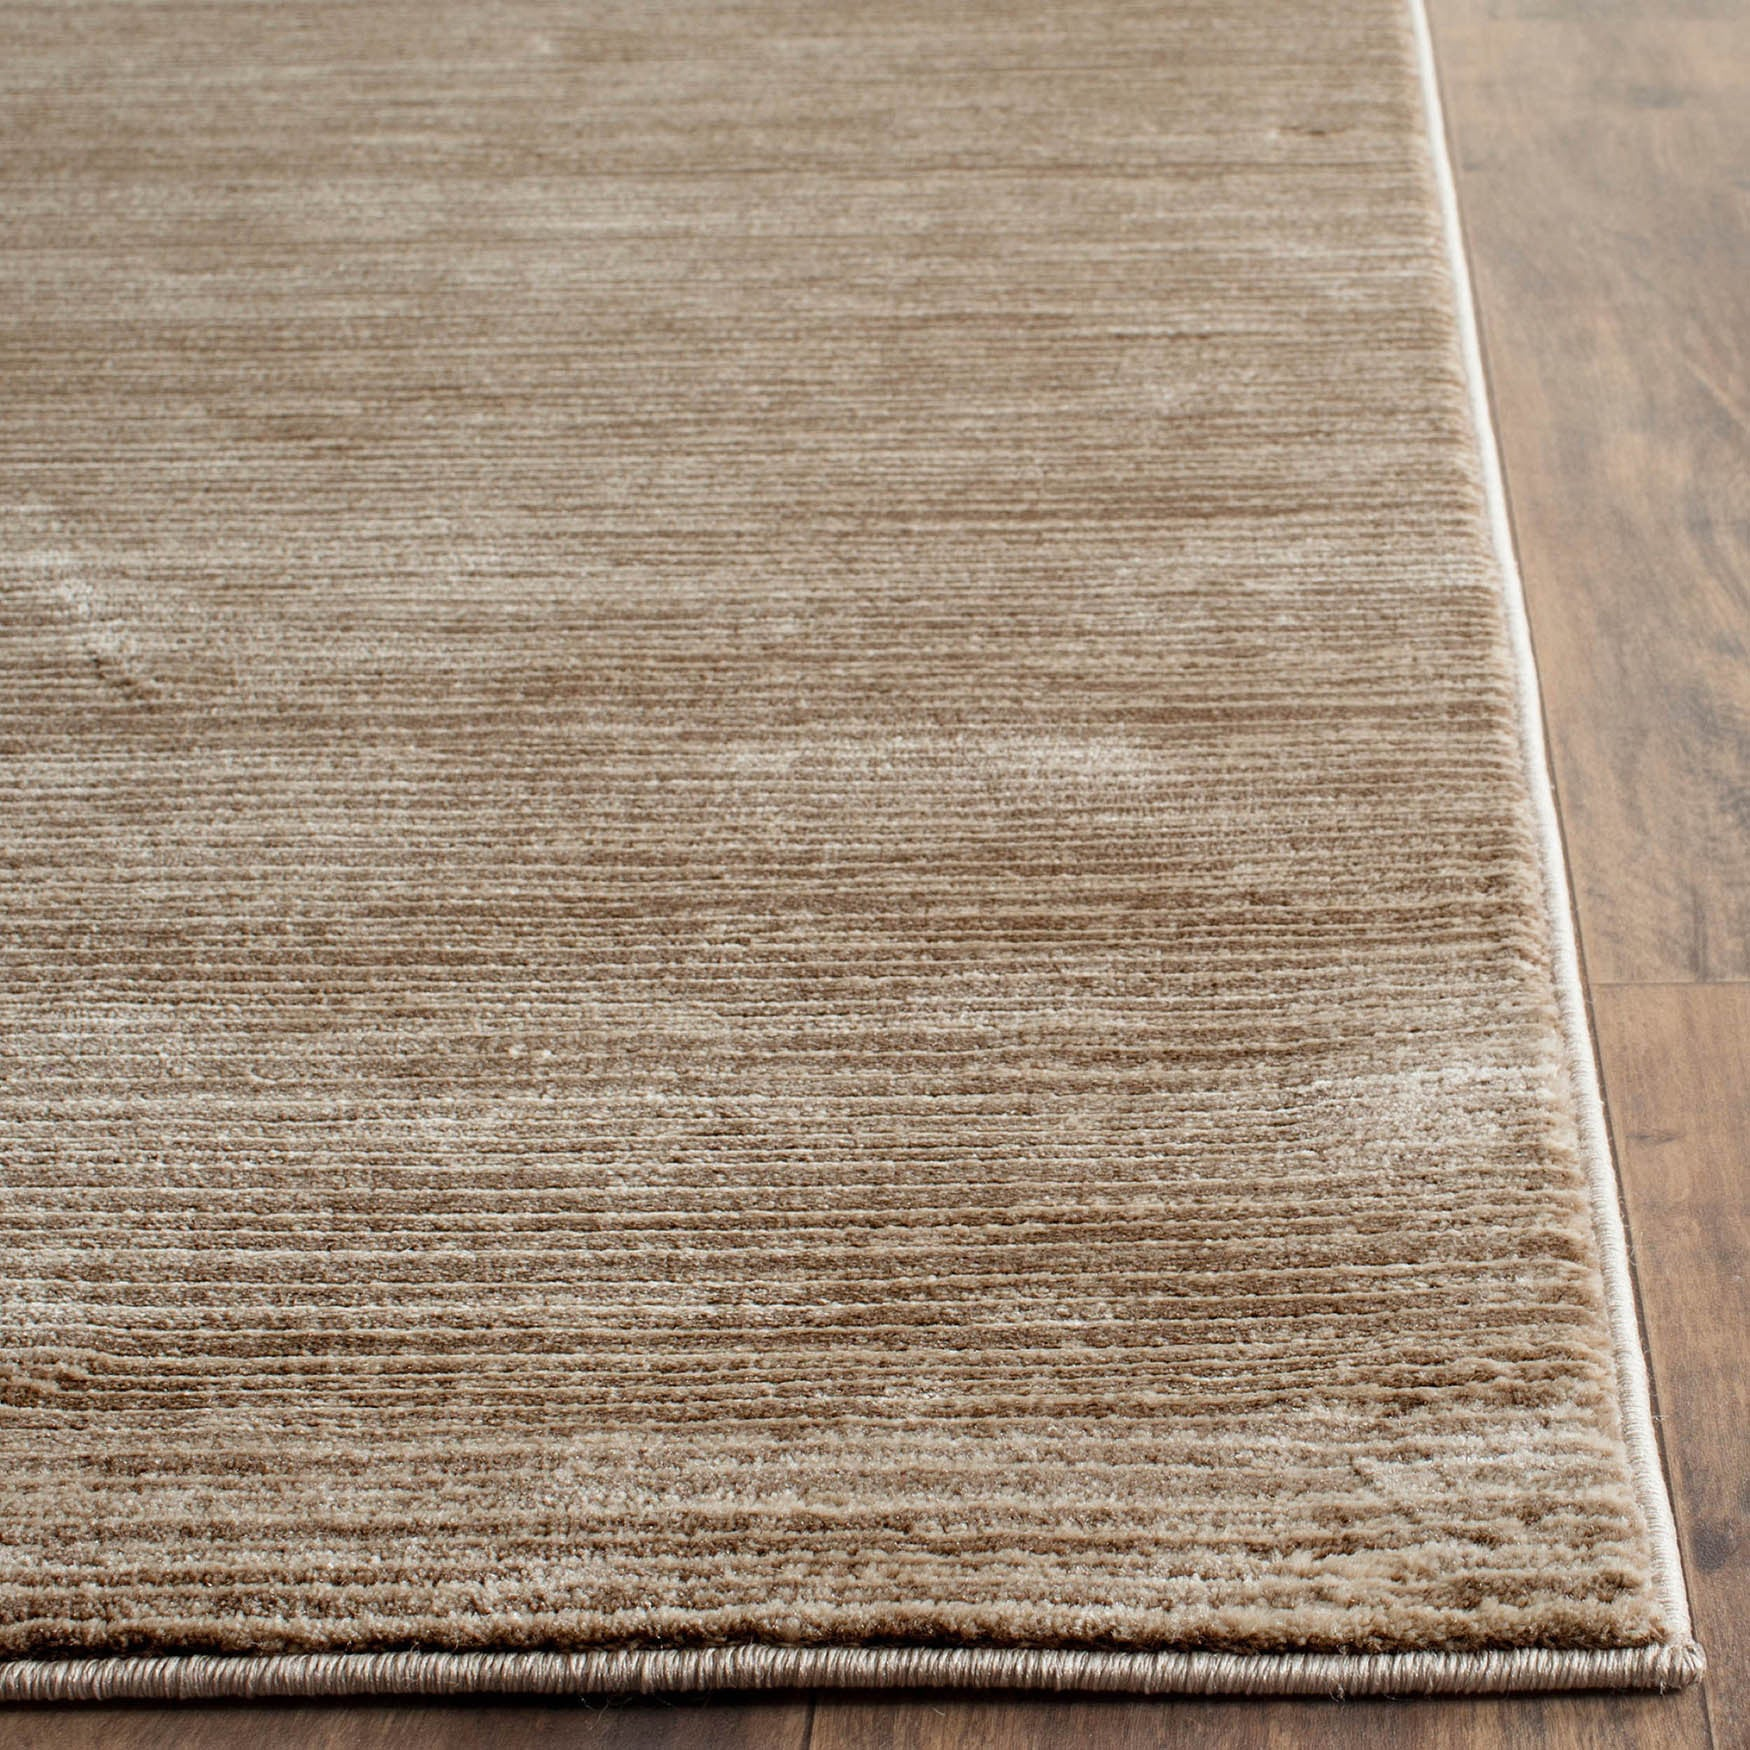 Safavieh Vision Contemporary Tonal Light Brown Area Rug 5 1 X 7 6 On Free Shipping Today 10059611